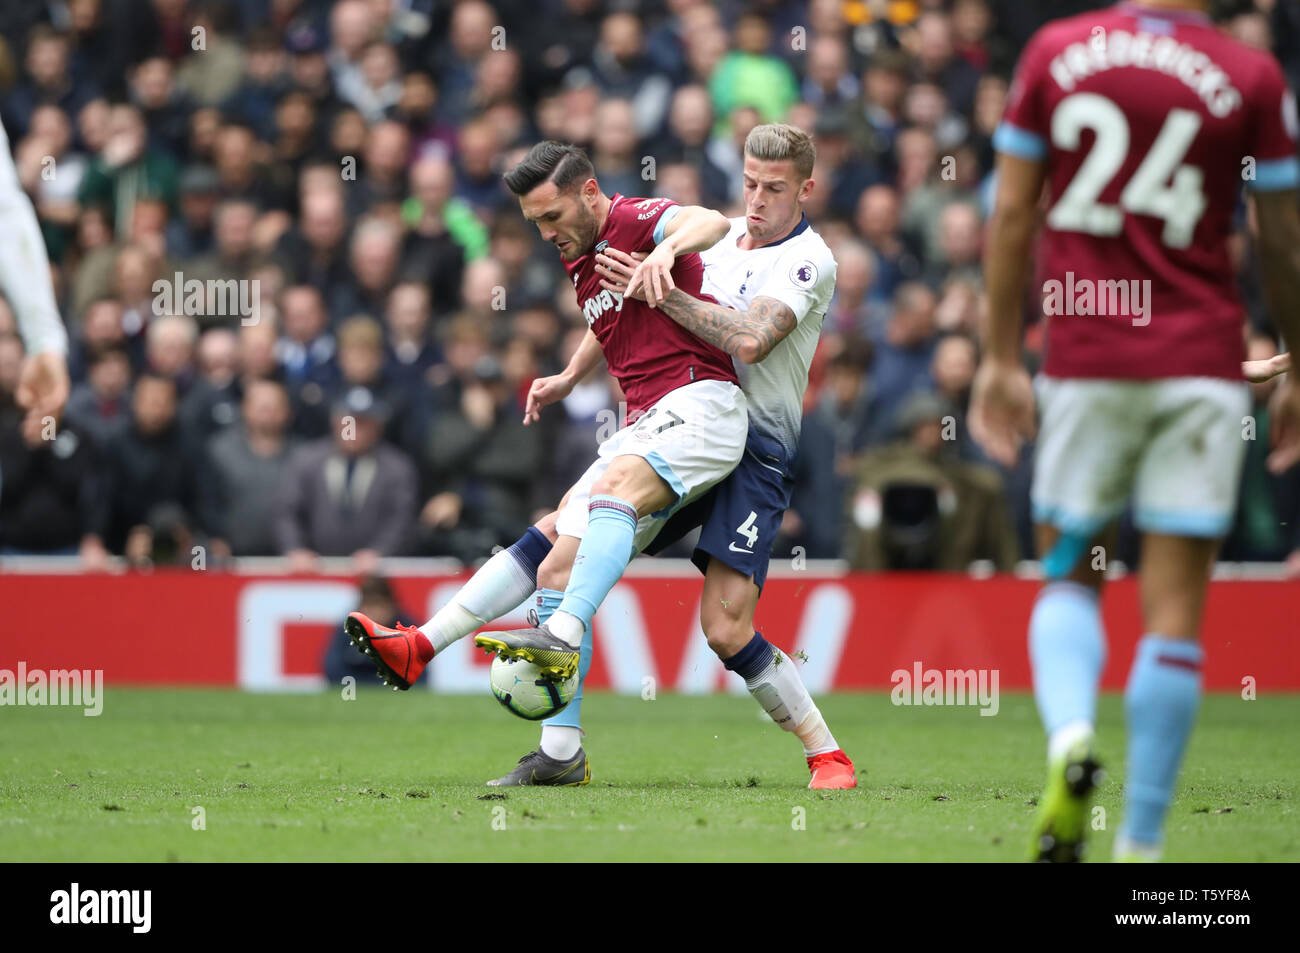 London, UK. 27th Apr 2019. Lucas Perez (WHU) Toby Alderweireld (TH) at the Tottenham Hotspur v West Ham United English Premier League match, at The Tottenham Hotspur Stadium, London, UK on April 27, 2019. **Editorial use only, license required for commercial use. No use in betting, games or a single club/league/player publications** Credit: Paul Marriott/Alamy Live News - Stock Image